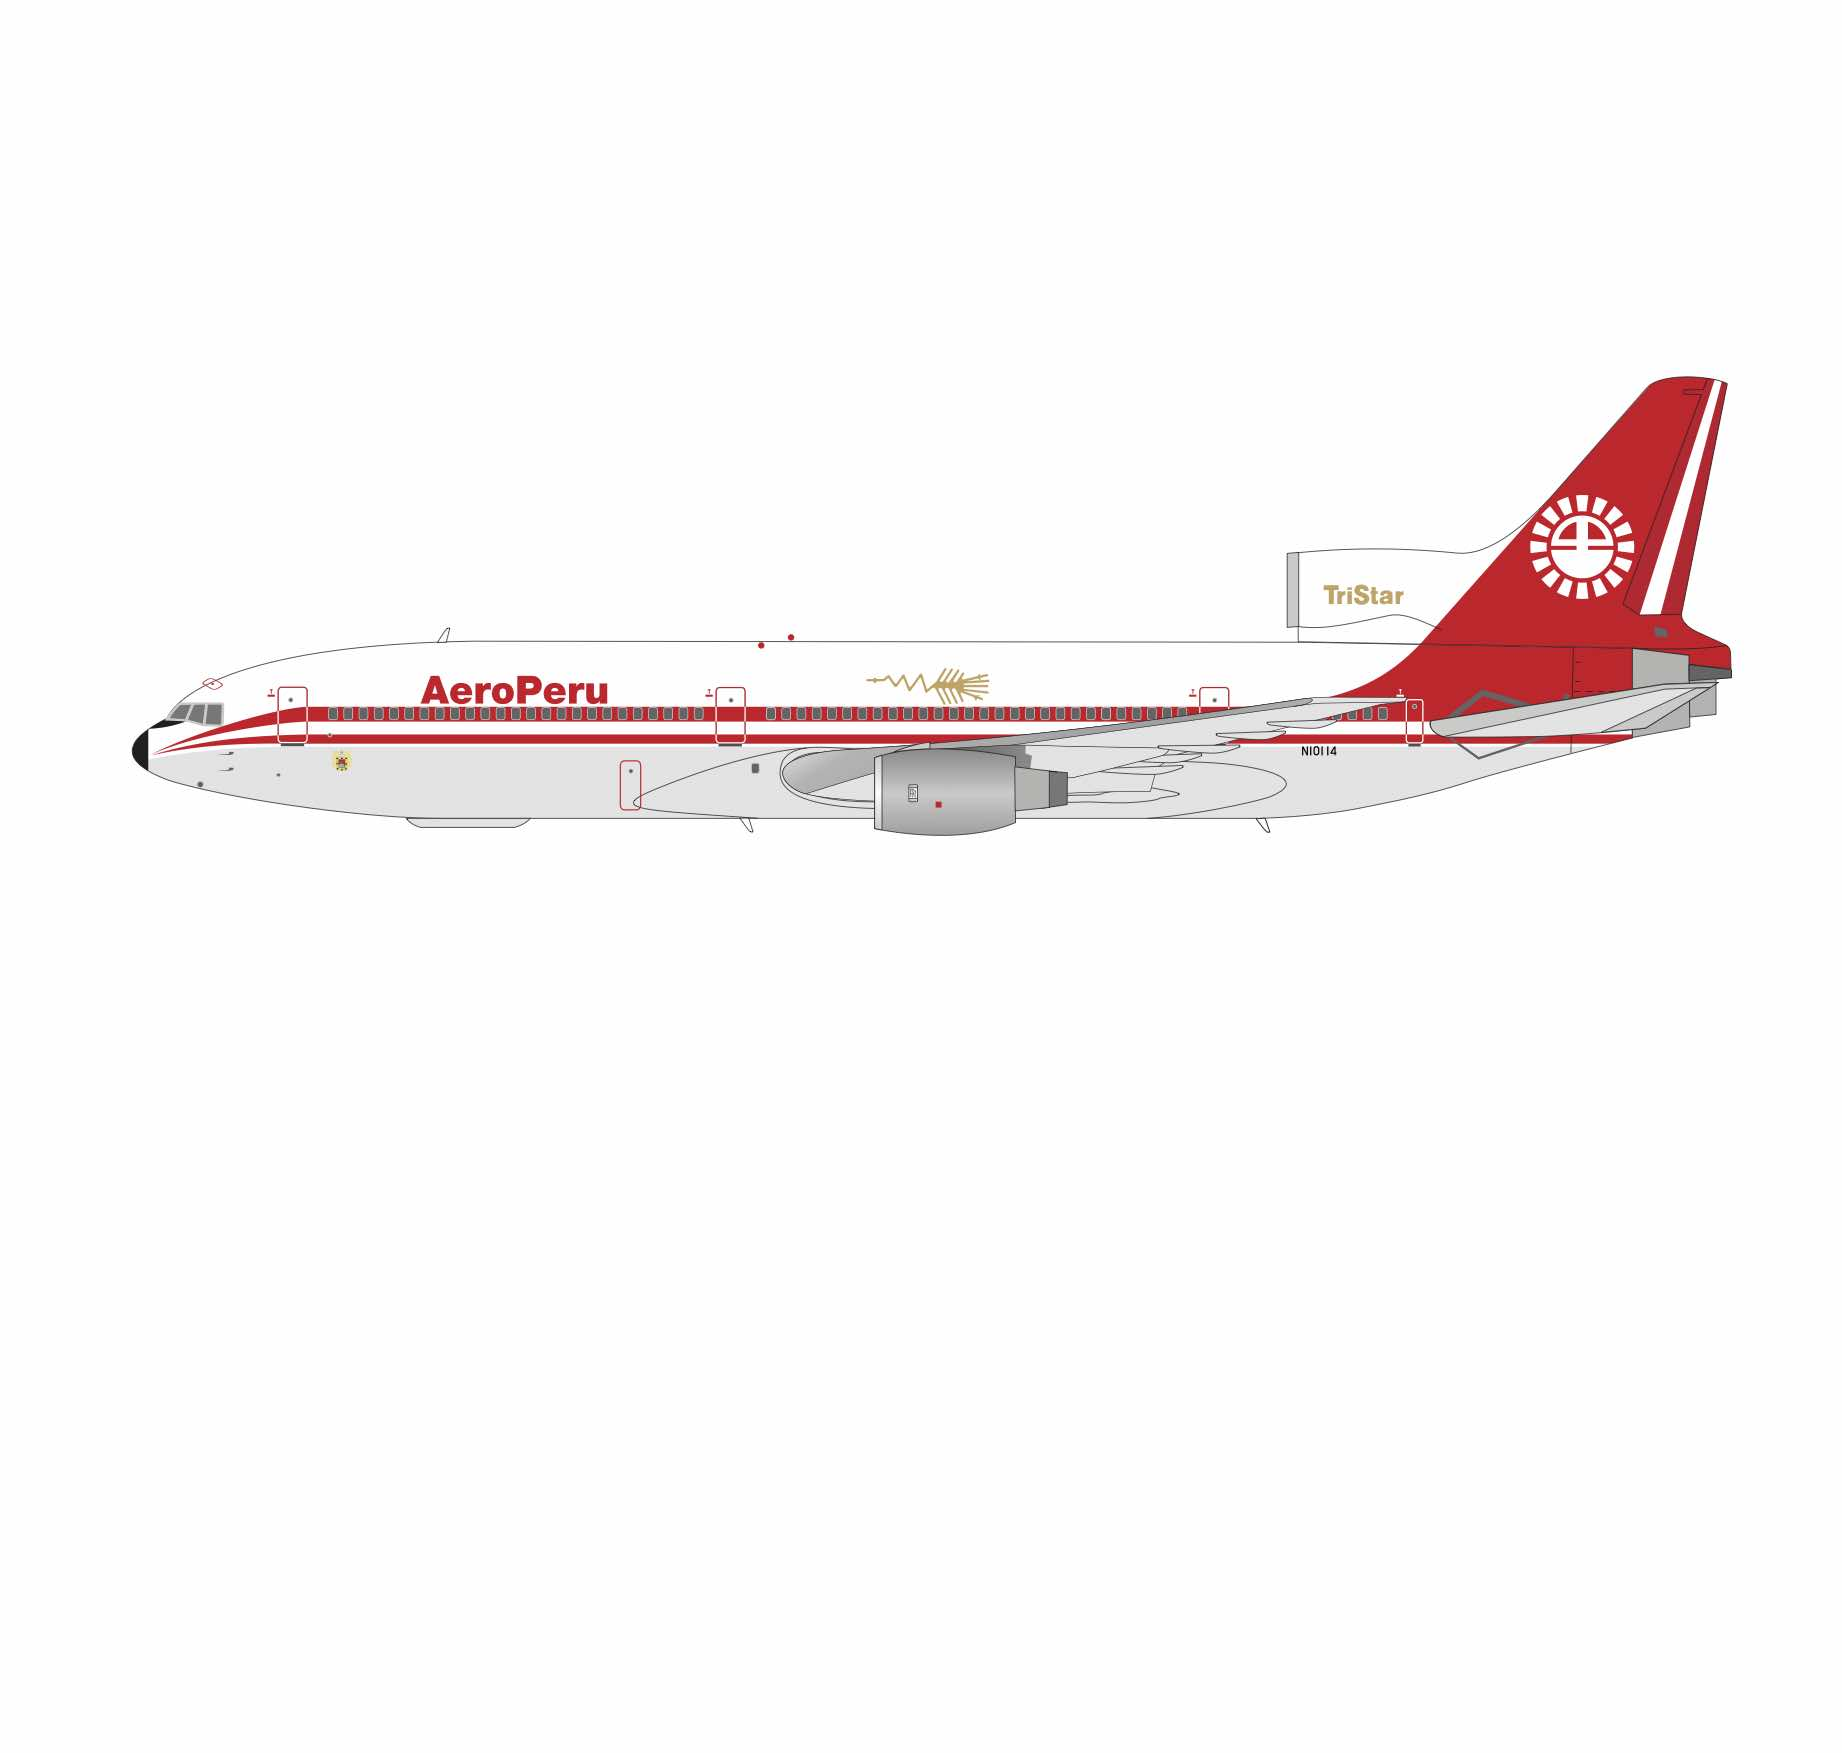 AeroPeru L-1011 N10114 with stand (1:200)